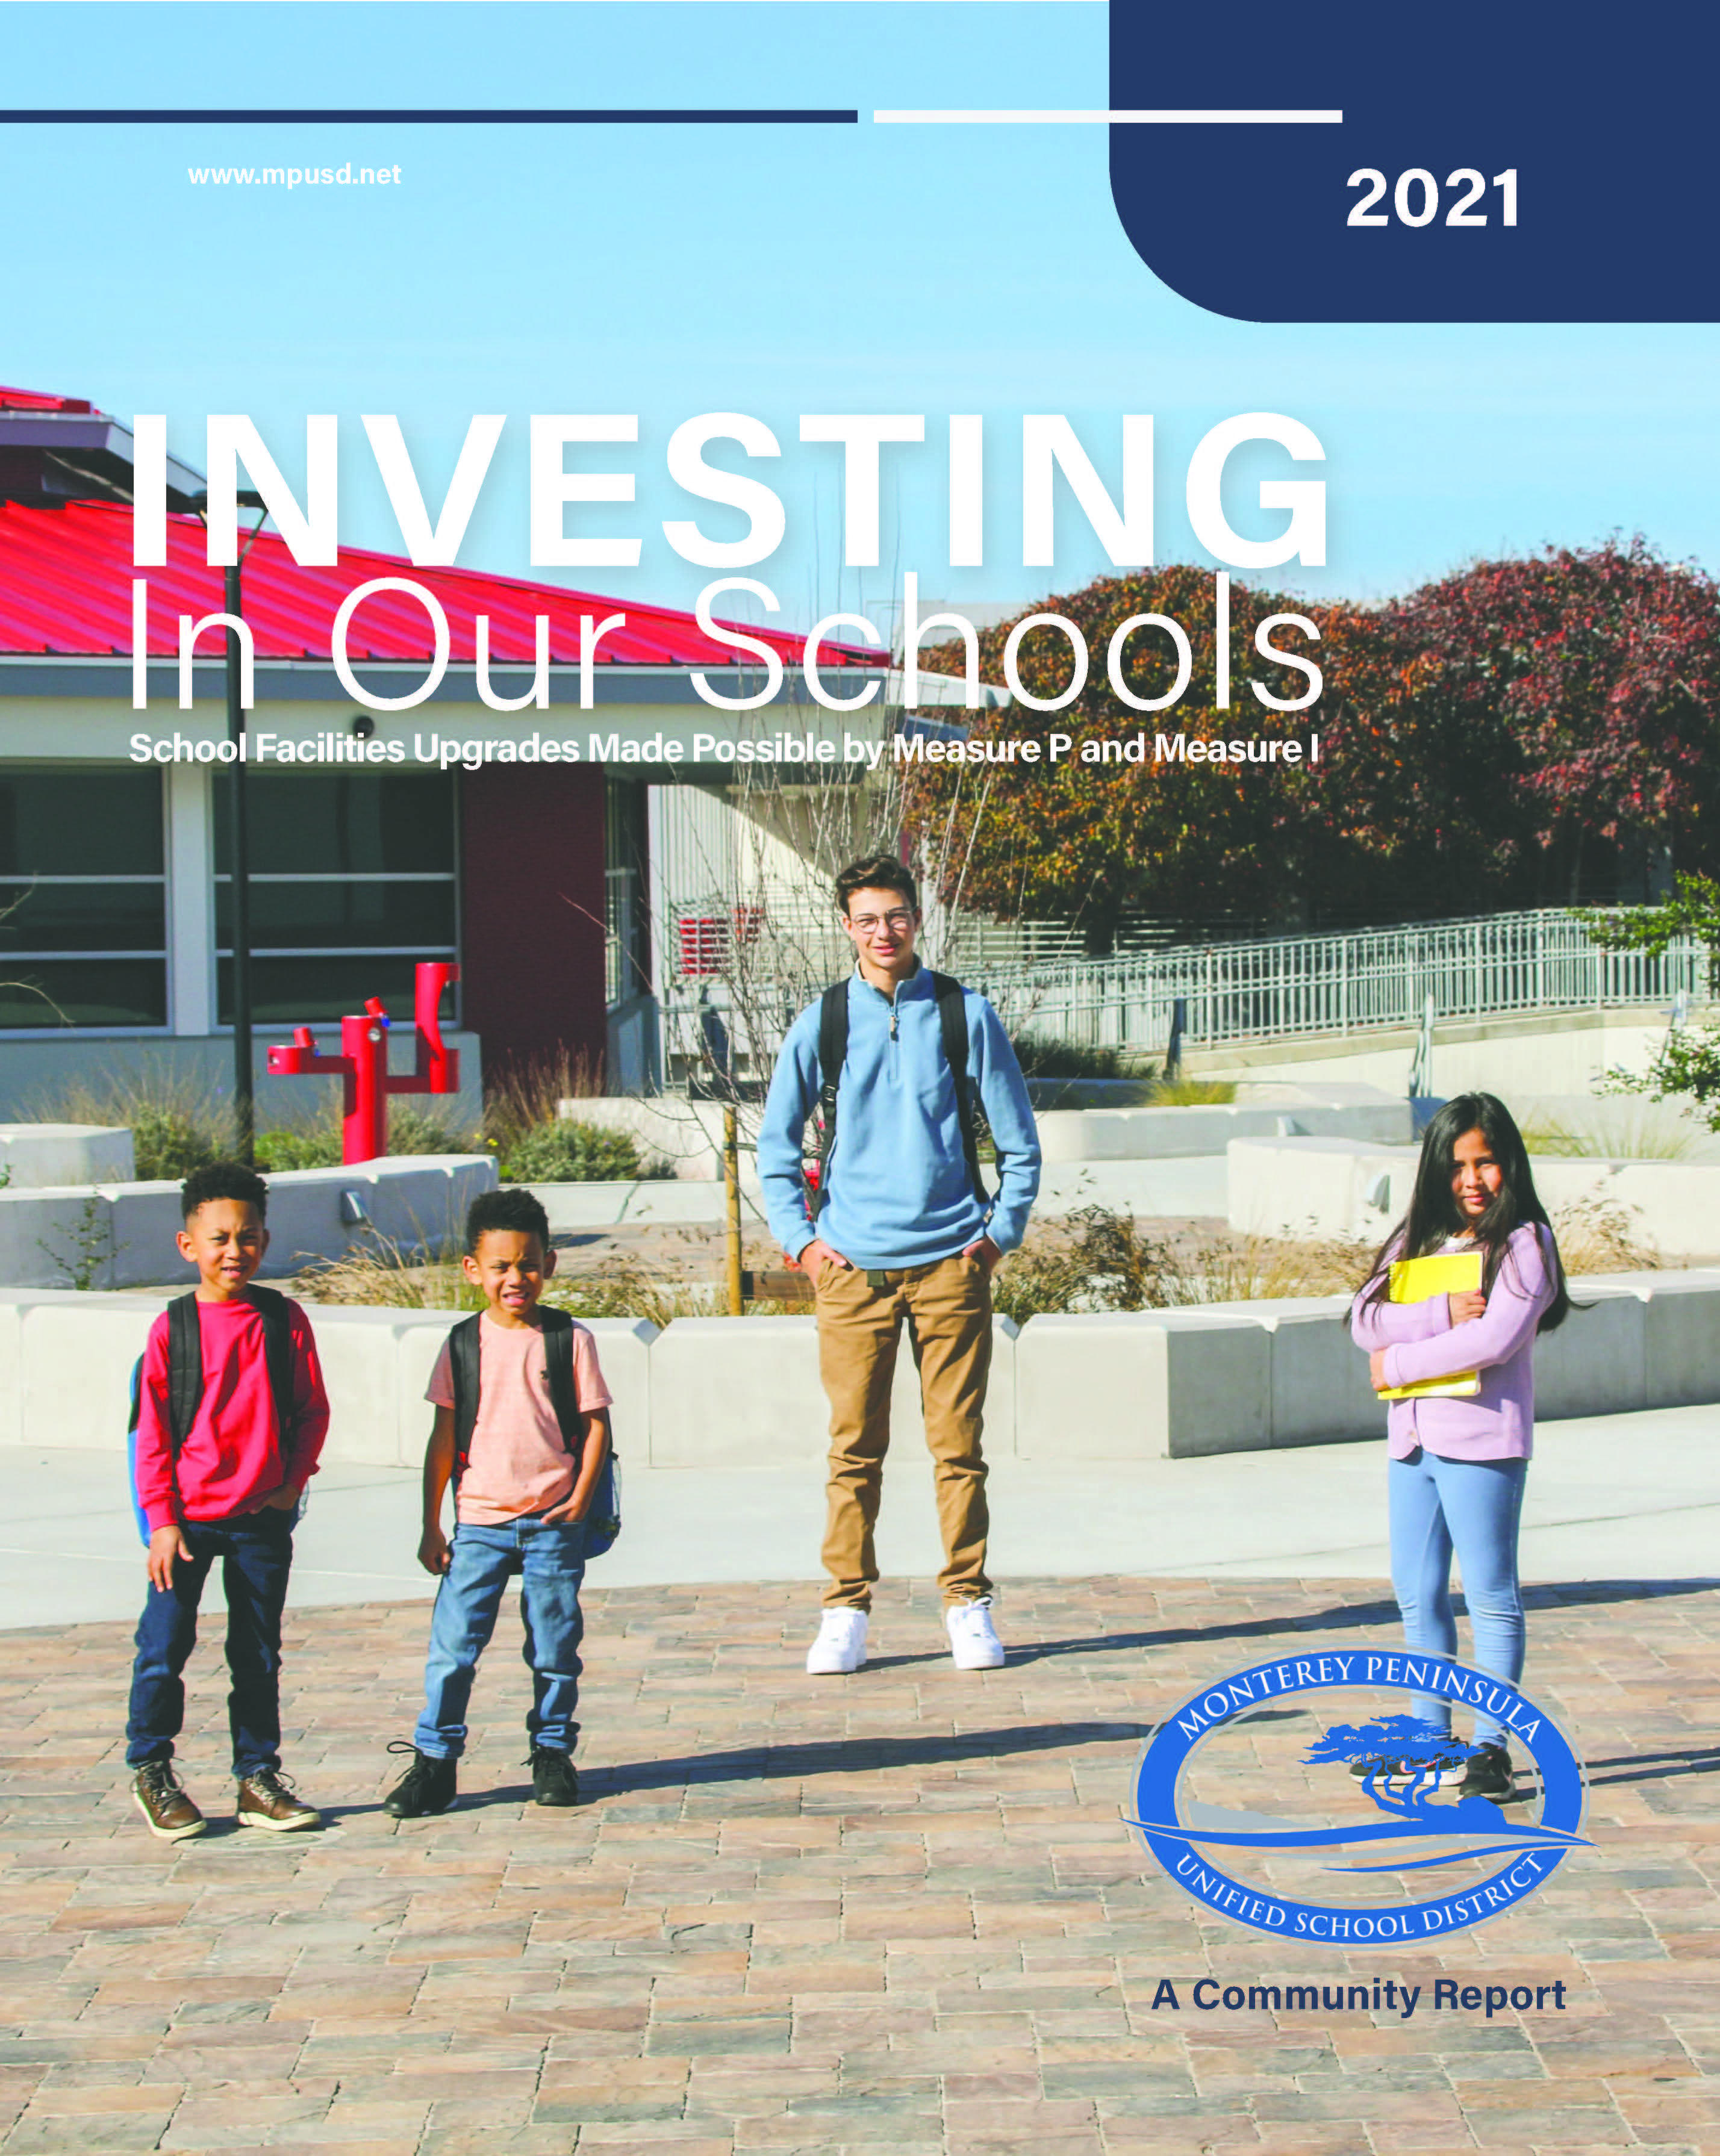 Investing in Our Schools